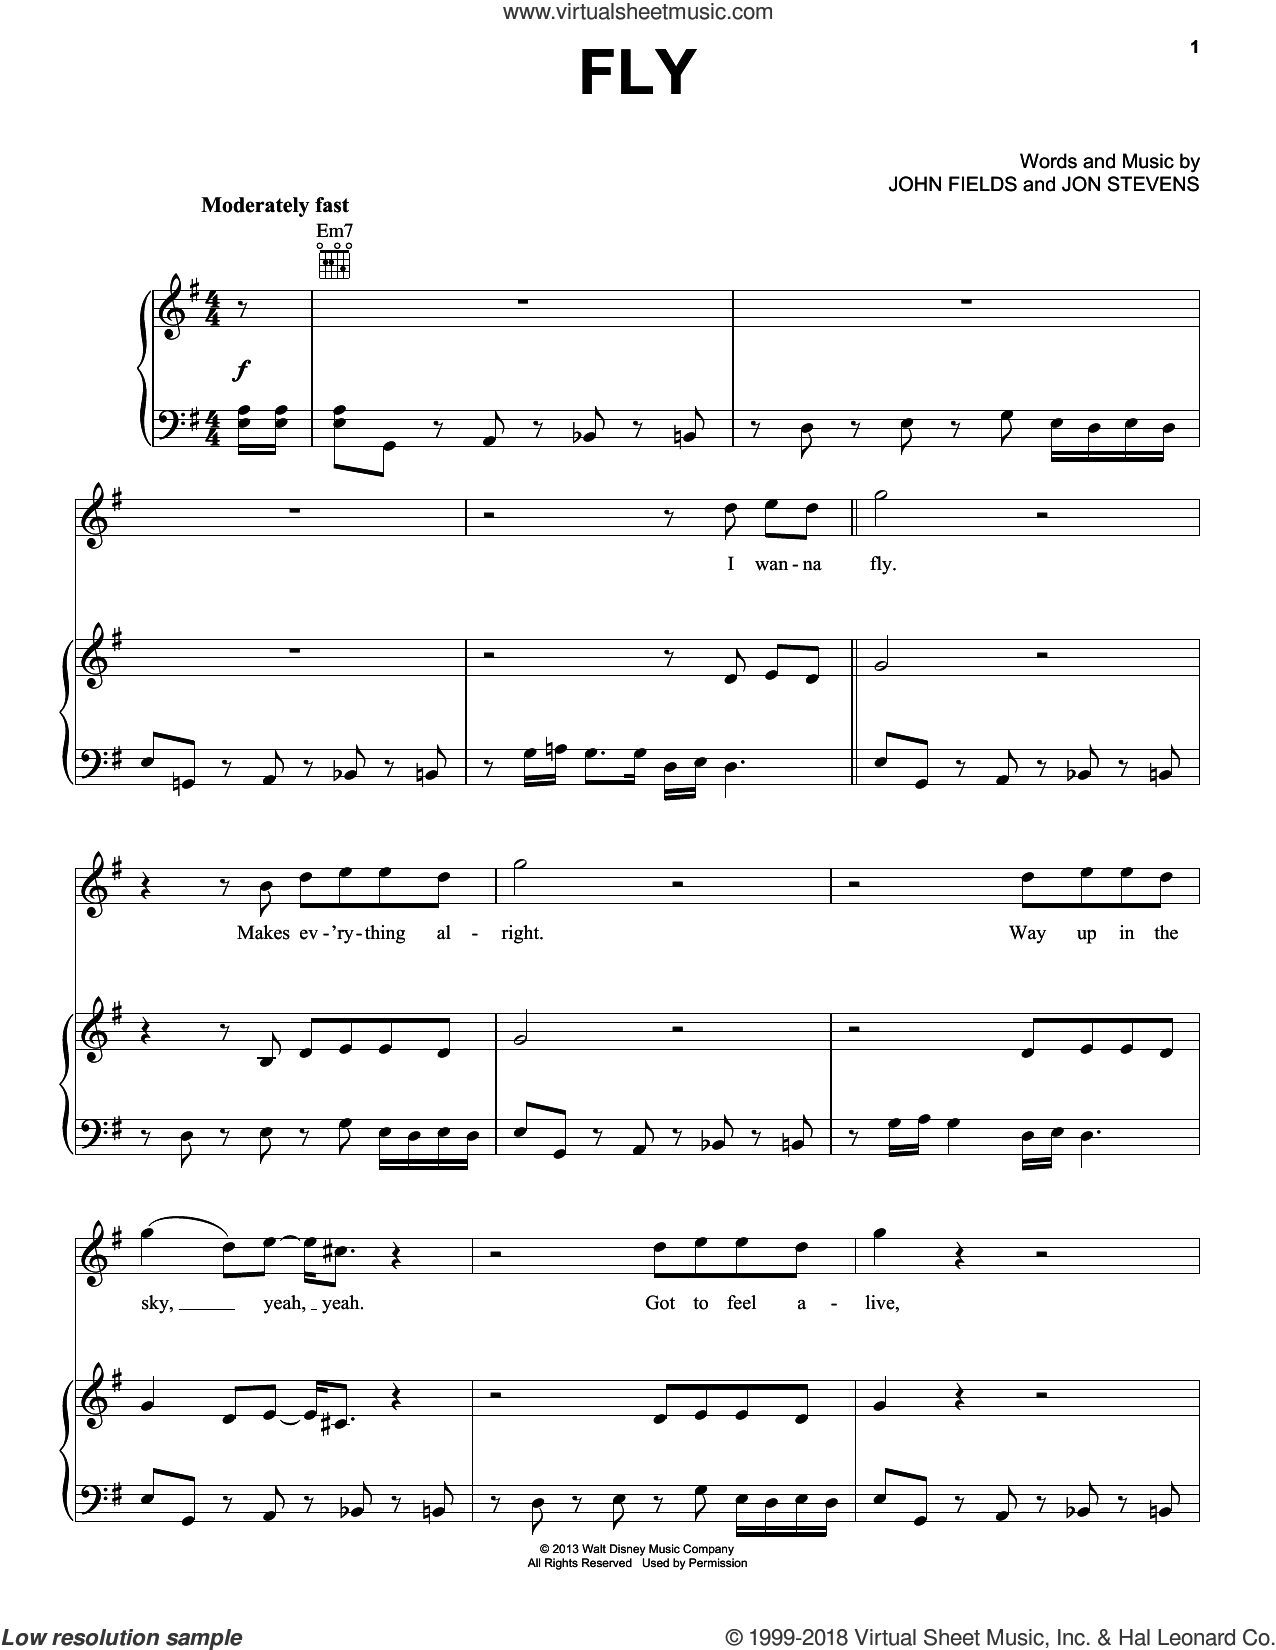 Fly sheet music for voice, piano or guitar by Mark Mancina, John Fields, Jon Stevens and Planes (Movie), intermediate skill level